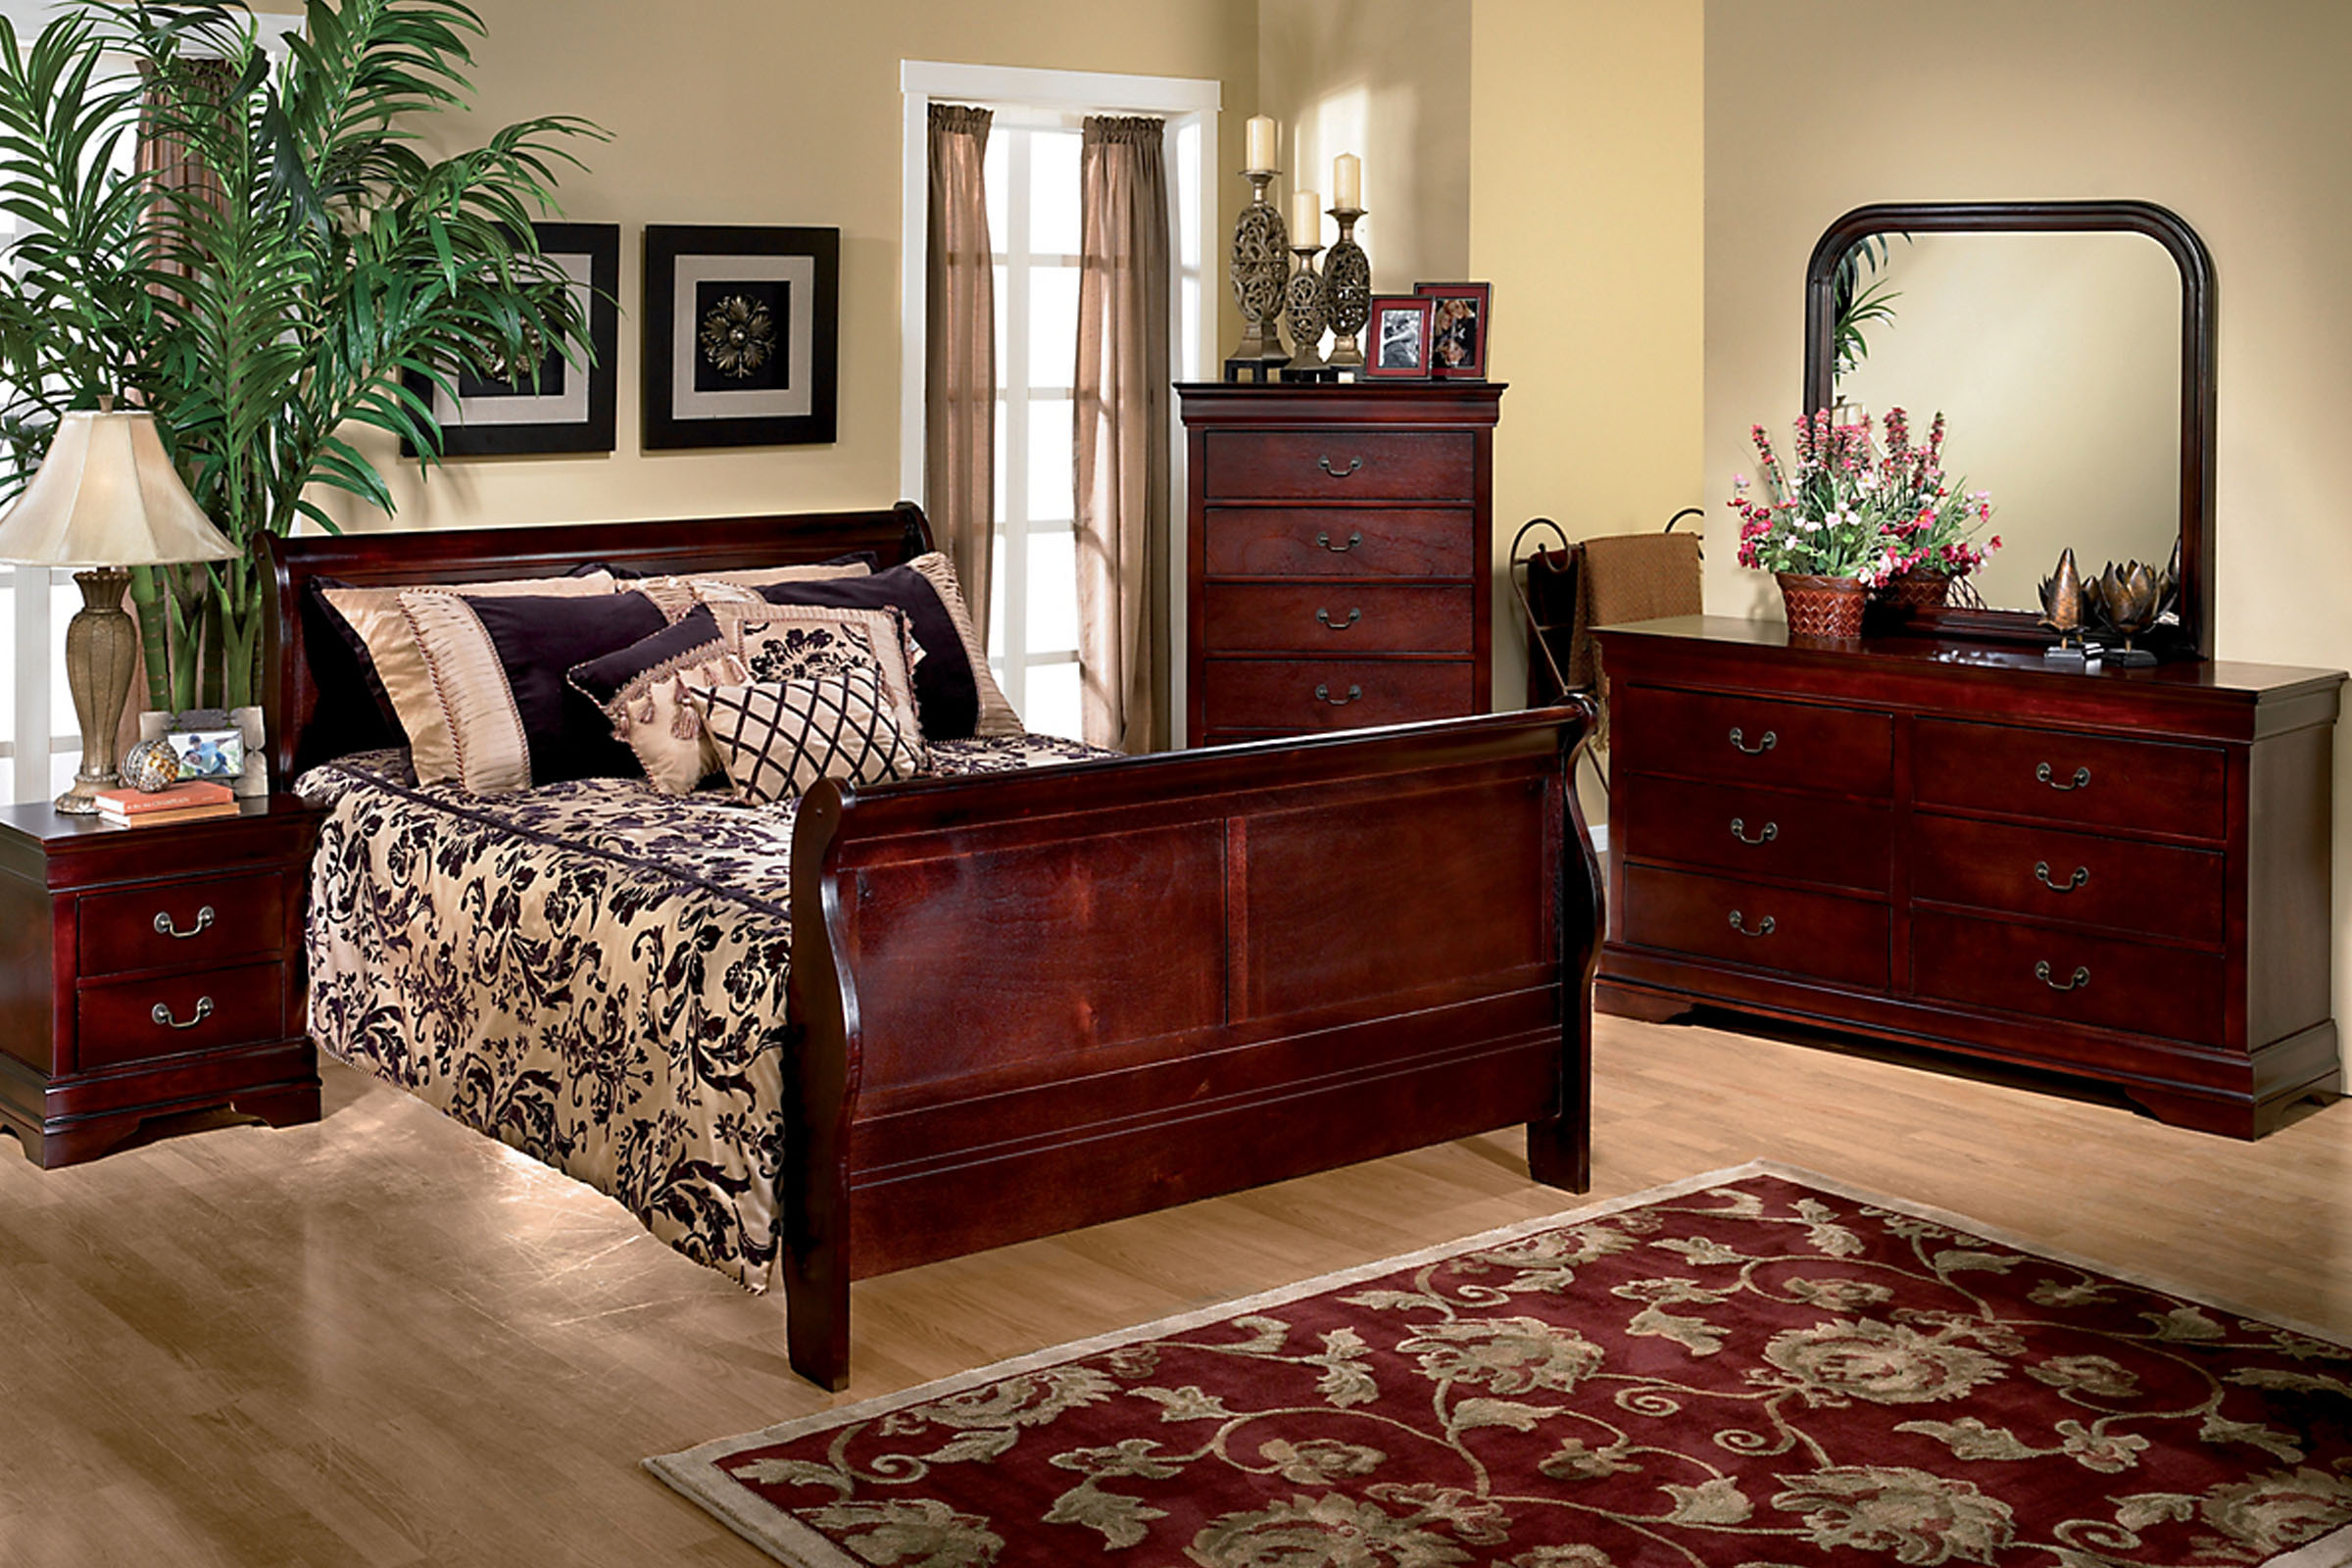 Louis 5-Piece Queen Bedroom Set